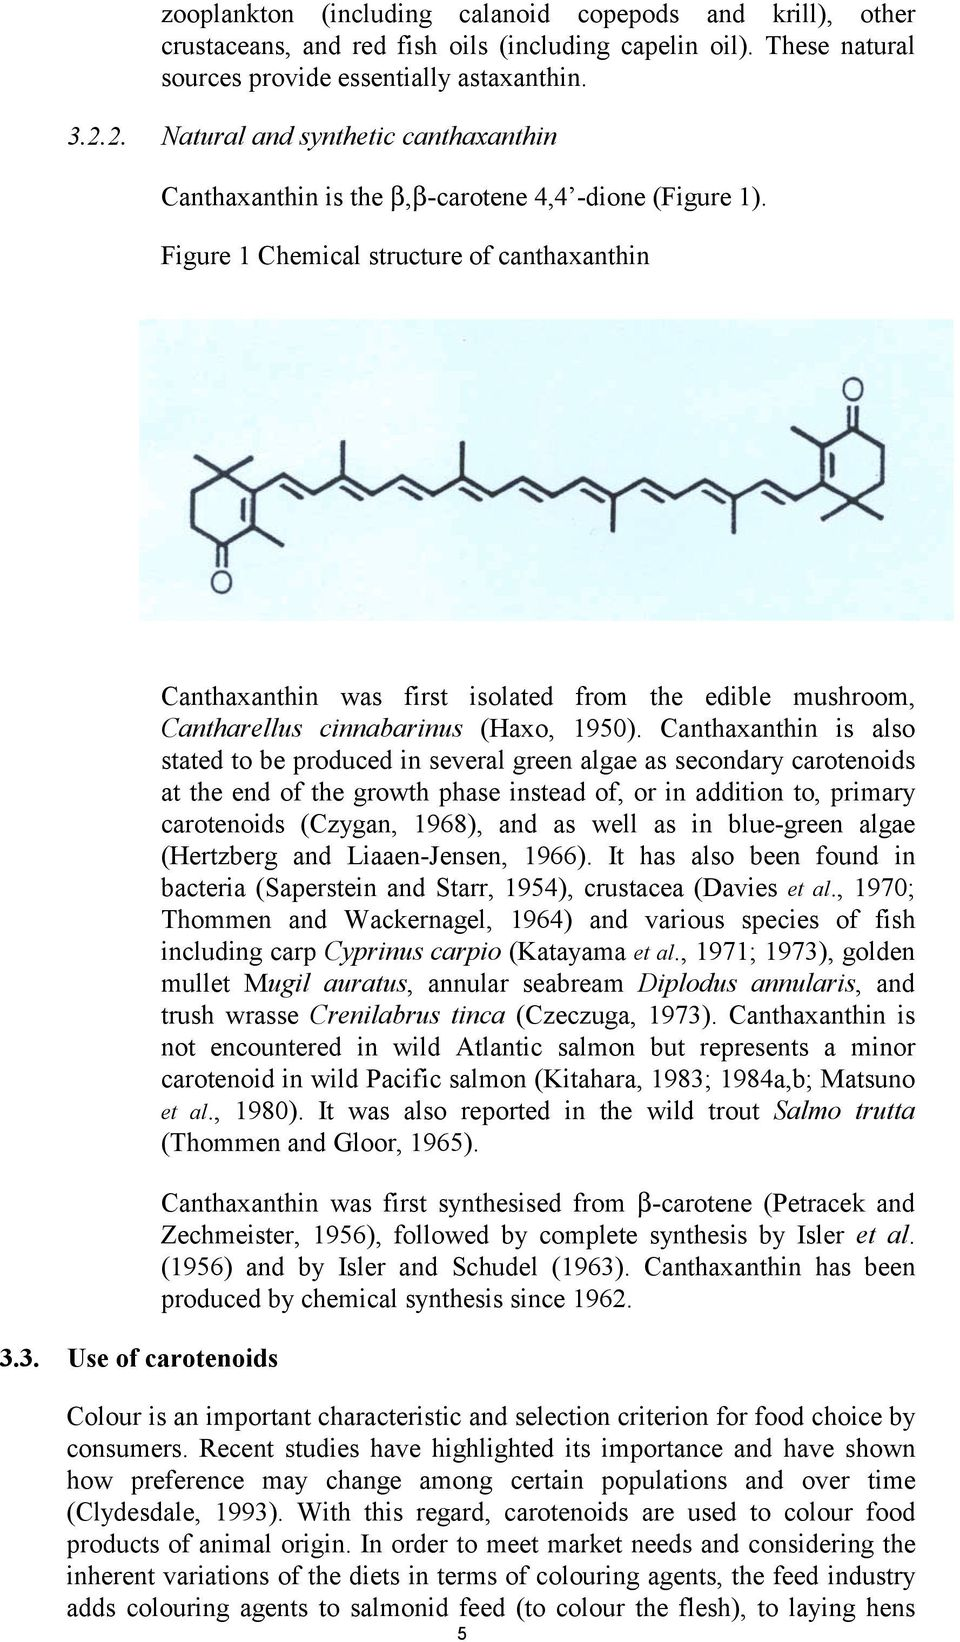 3. Use of carotenoids Canthaxanthin was first isolated from the edible mushroom, Cantharellus cinnabarinus (Haxo, 1950).